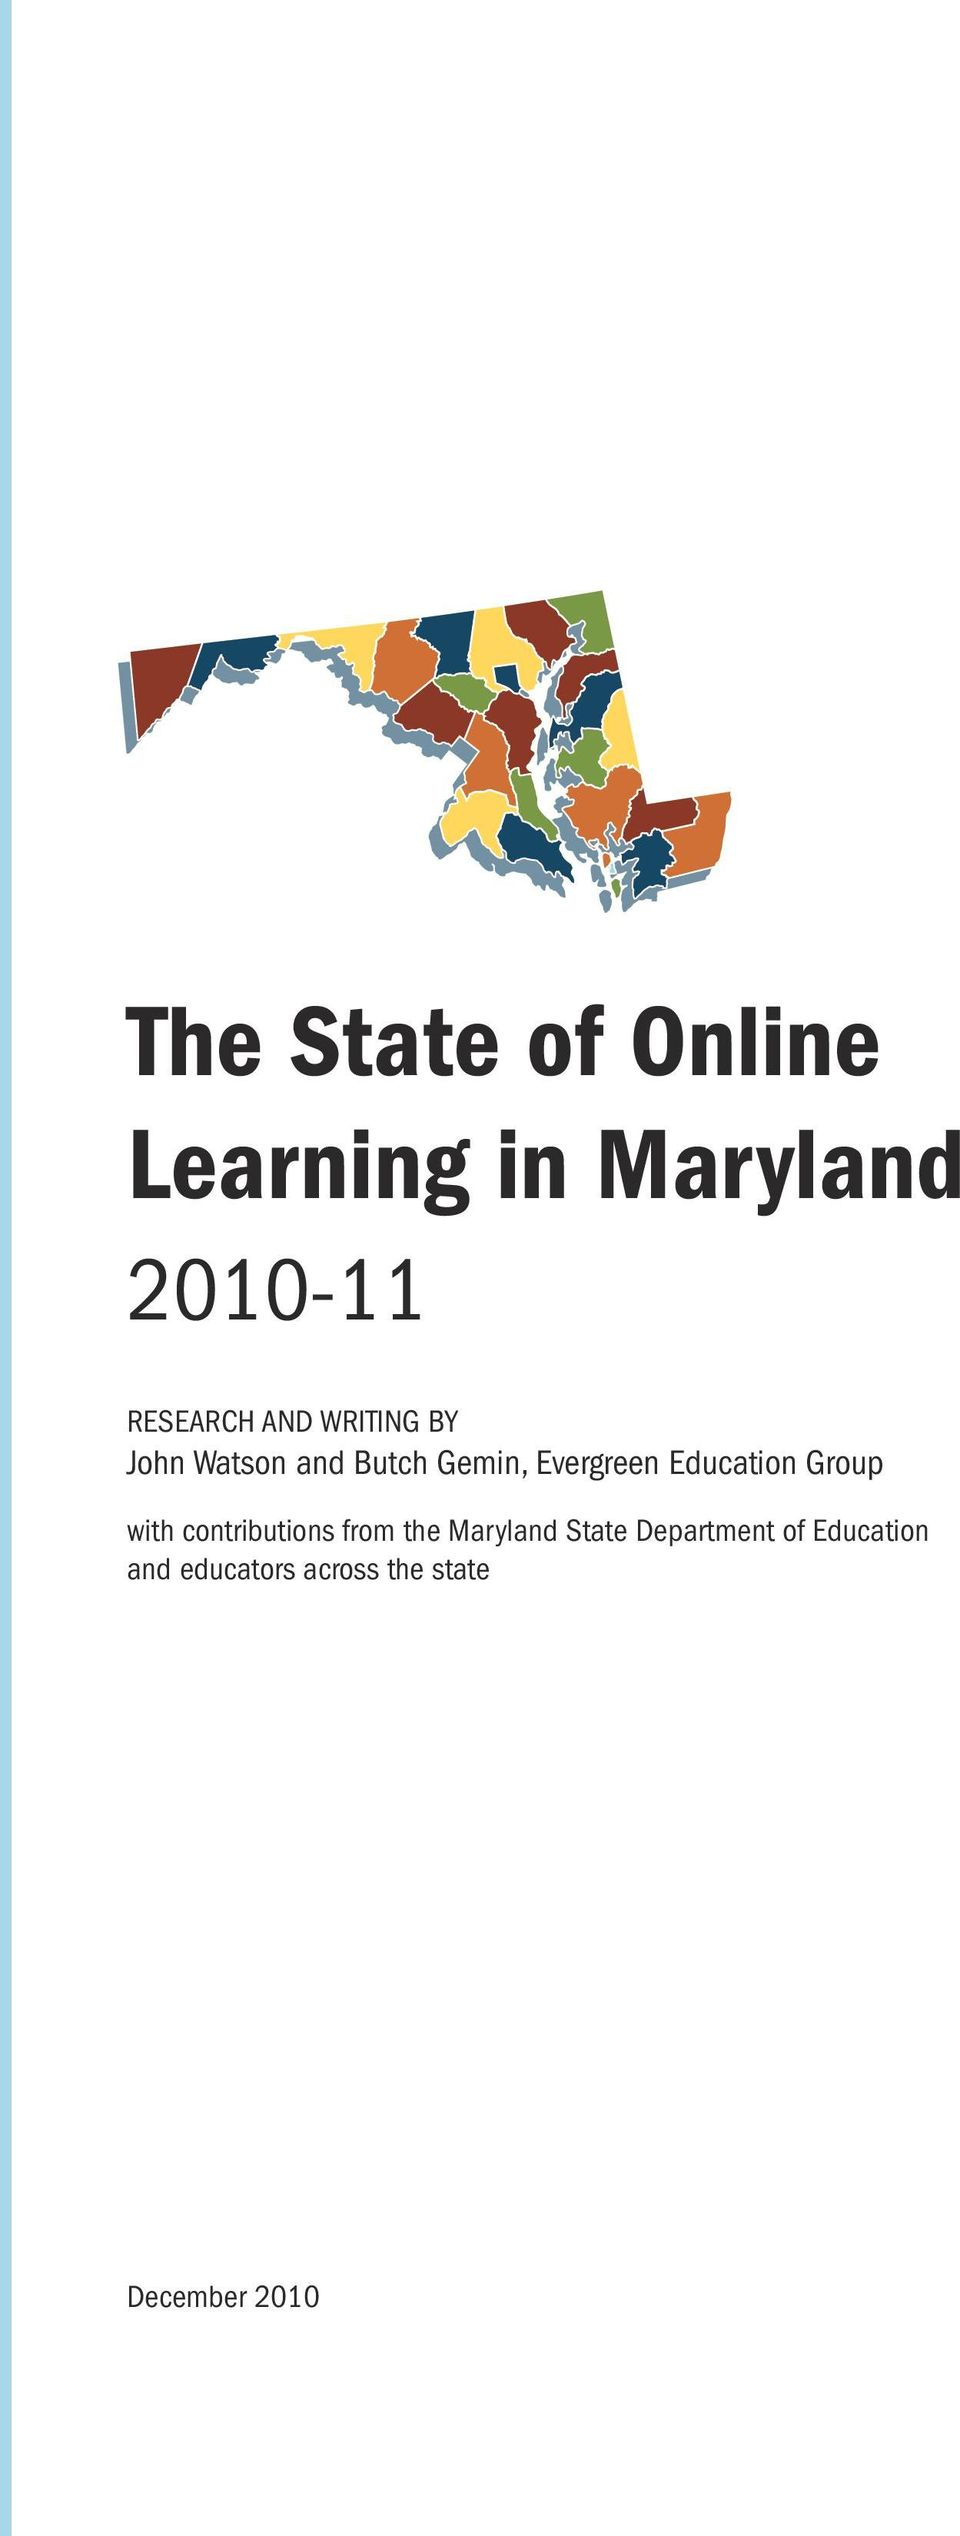 Education Group with contributions from the Maryland State